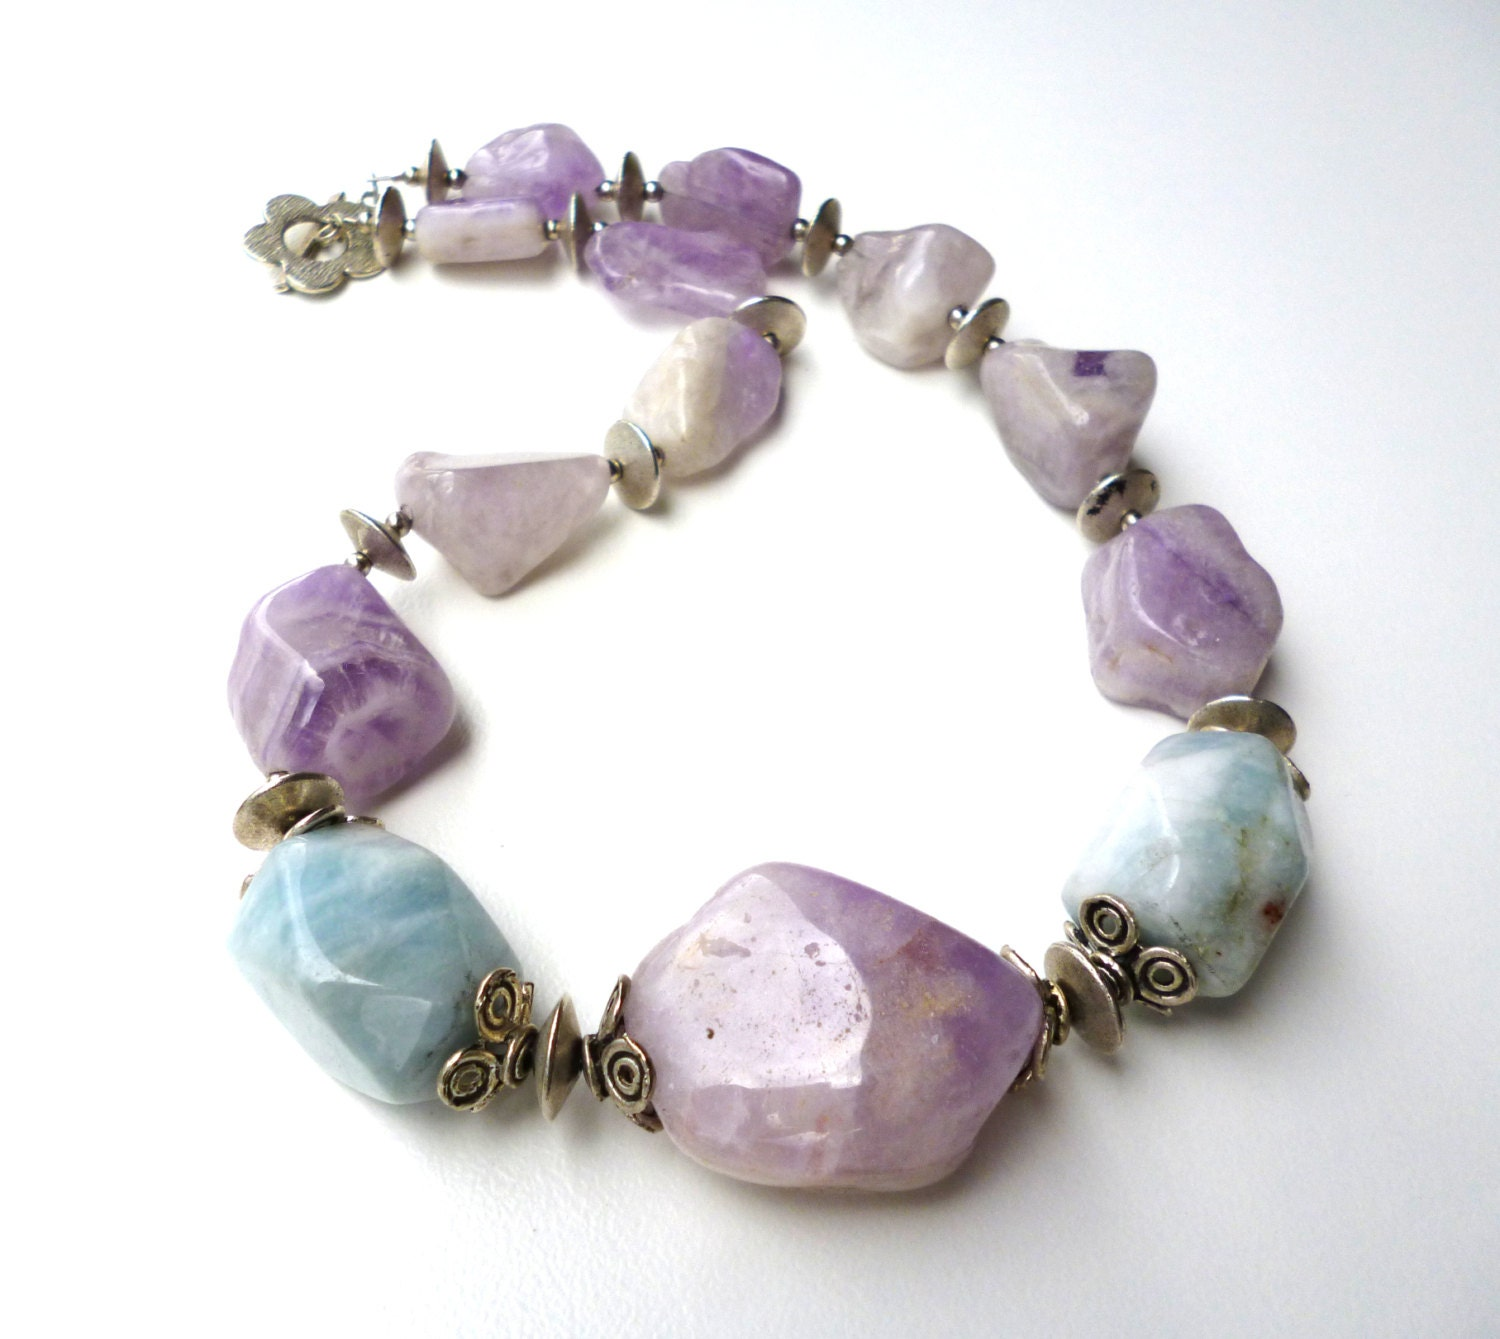 amethyst stone necklace - photo #26